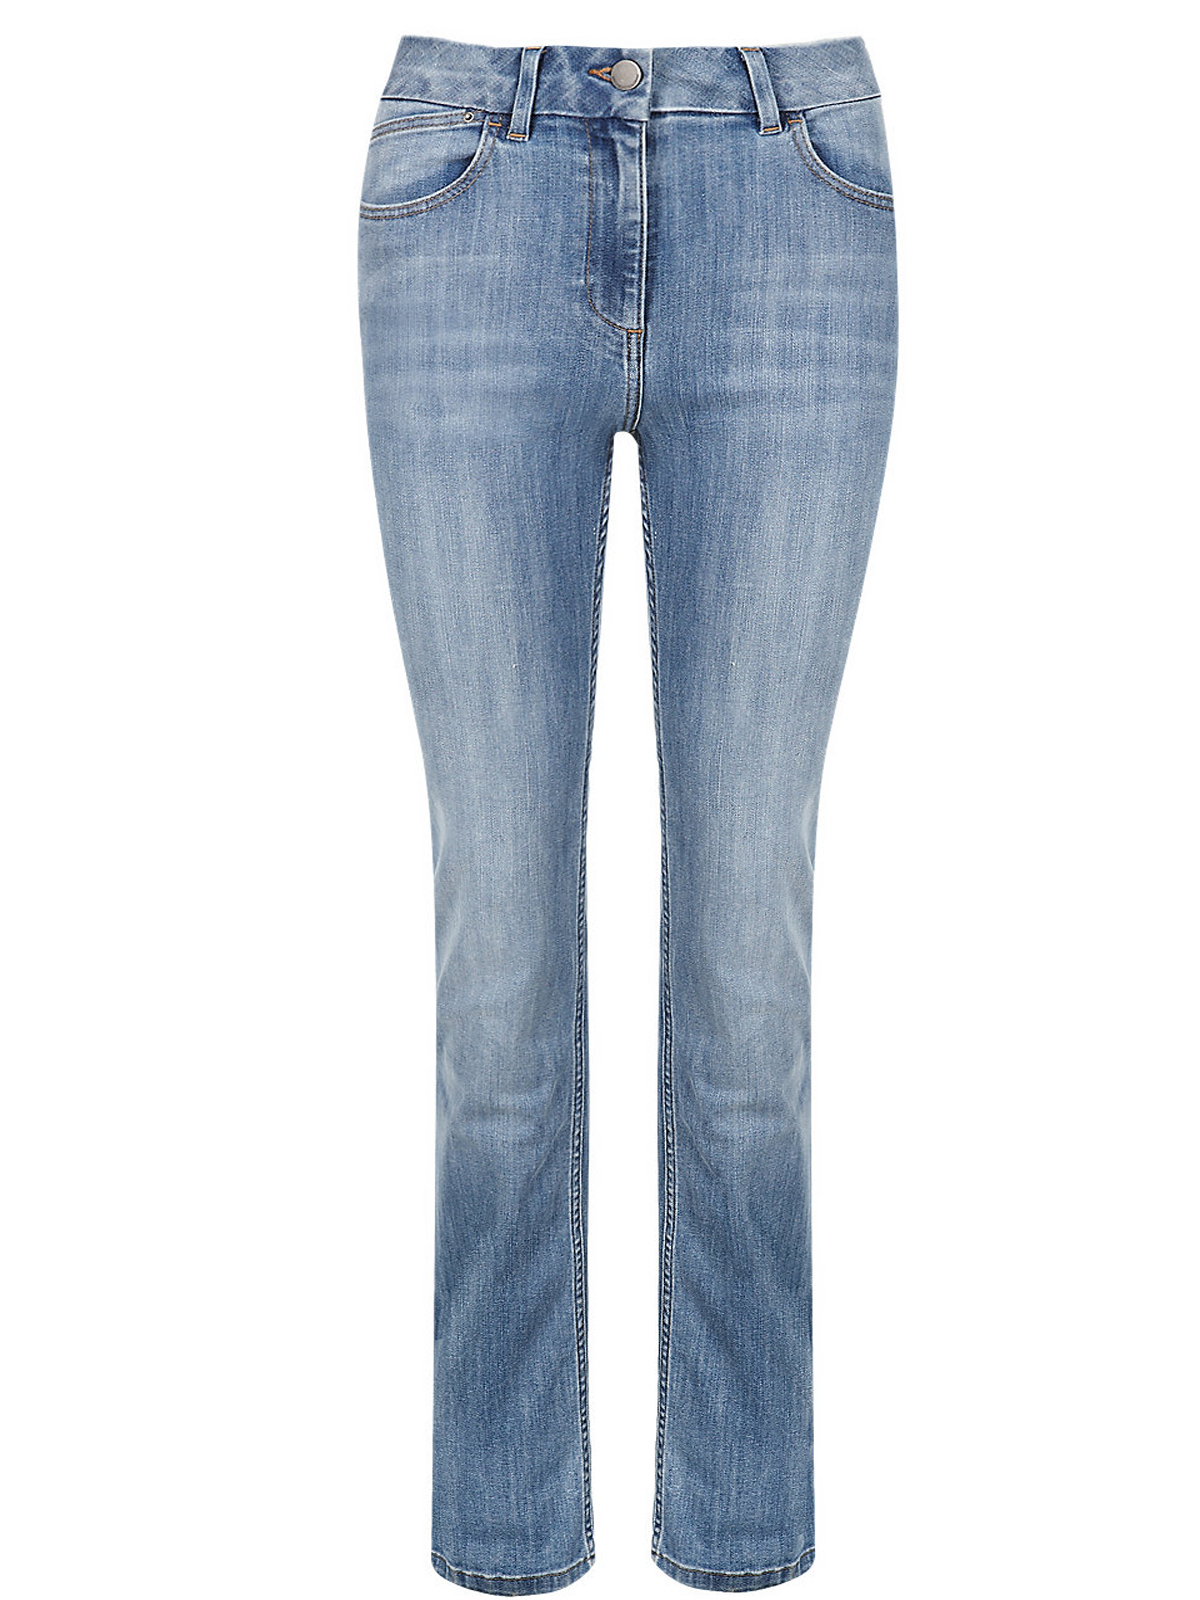 » Free Shipping Topman Stretch Slim Fit Raw Denim Jeans by Mens Jeans Amp Denim, Online shopping for Sports & Outdoors from a great selection of Women, Men, Girls, Boys & .